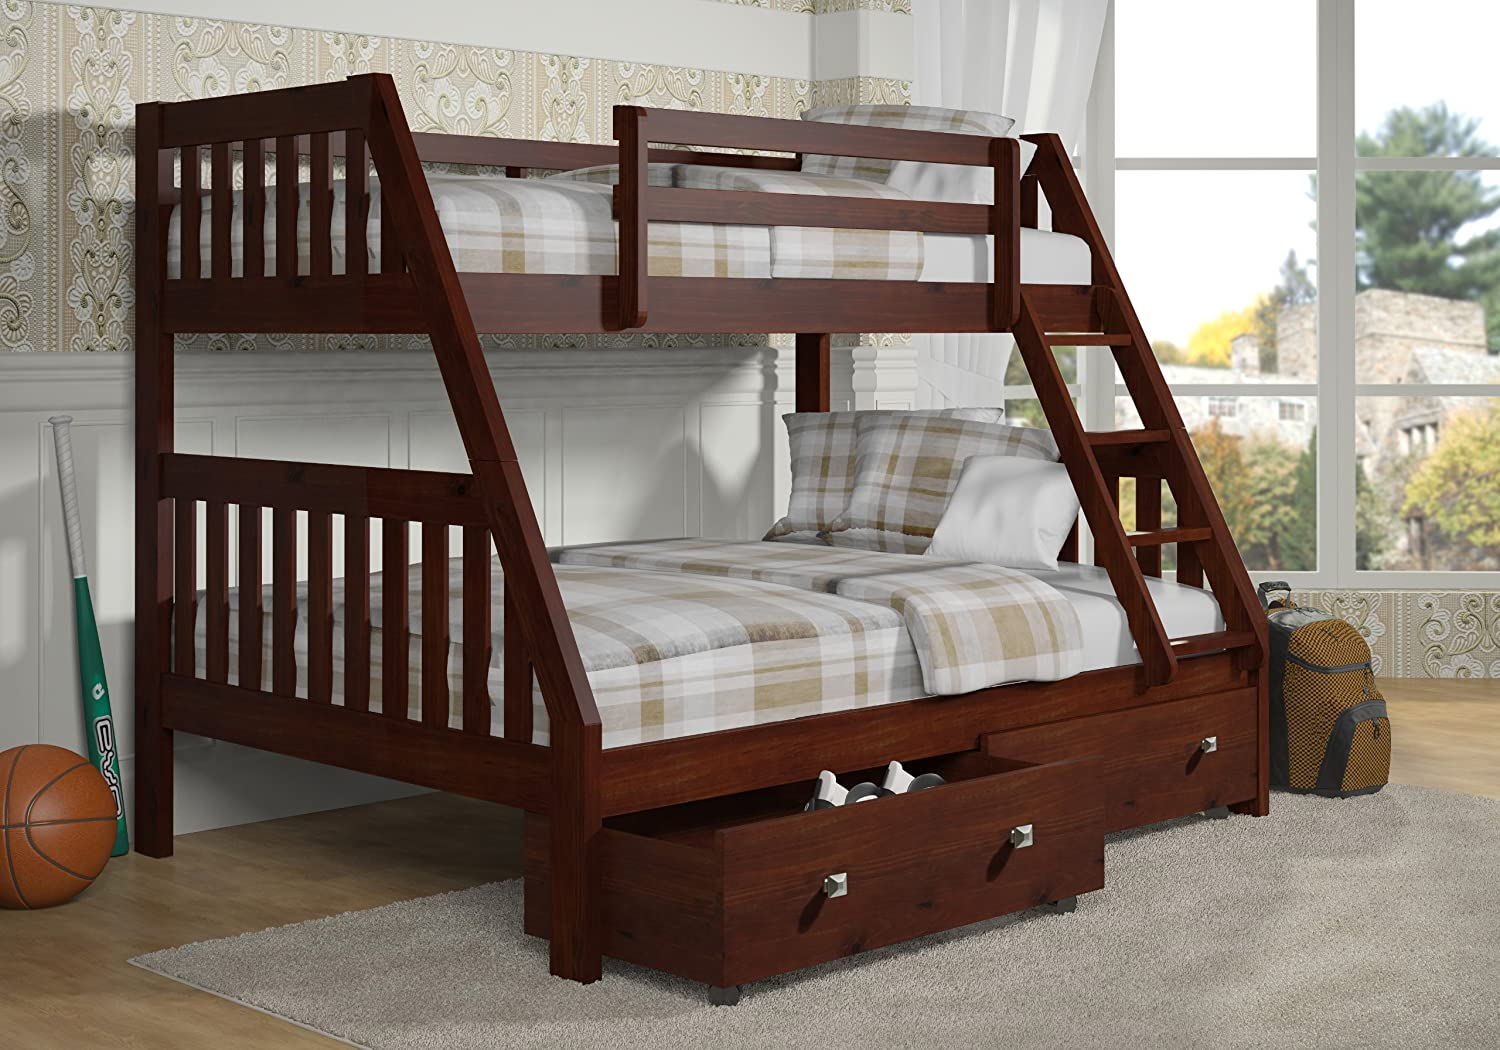 beds atlantic product twin bunkbedonly hayneedle cfm over bed options full bunk stairway columbia furniture